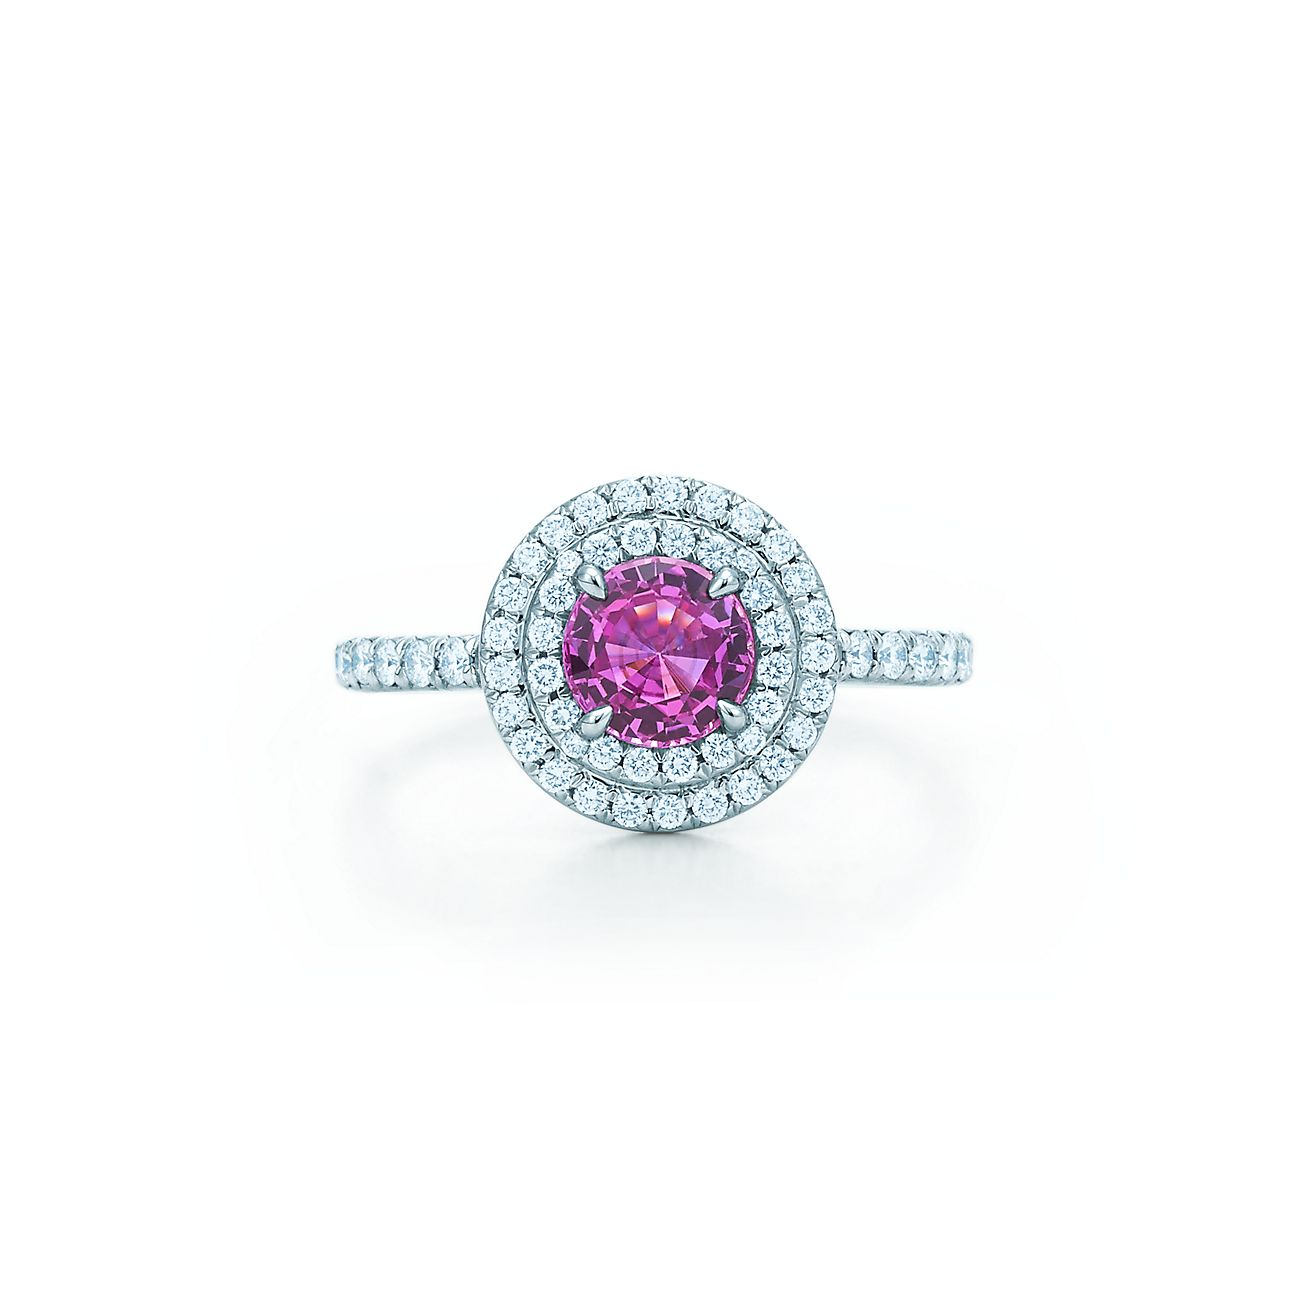 rings gold center diamonds products stone ring rosa quadrado sapphire pink faldini mirella